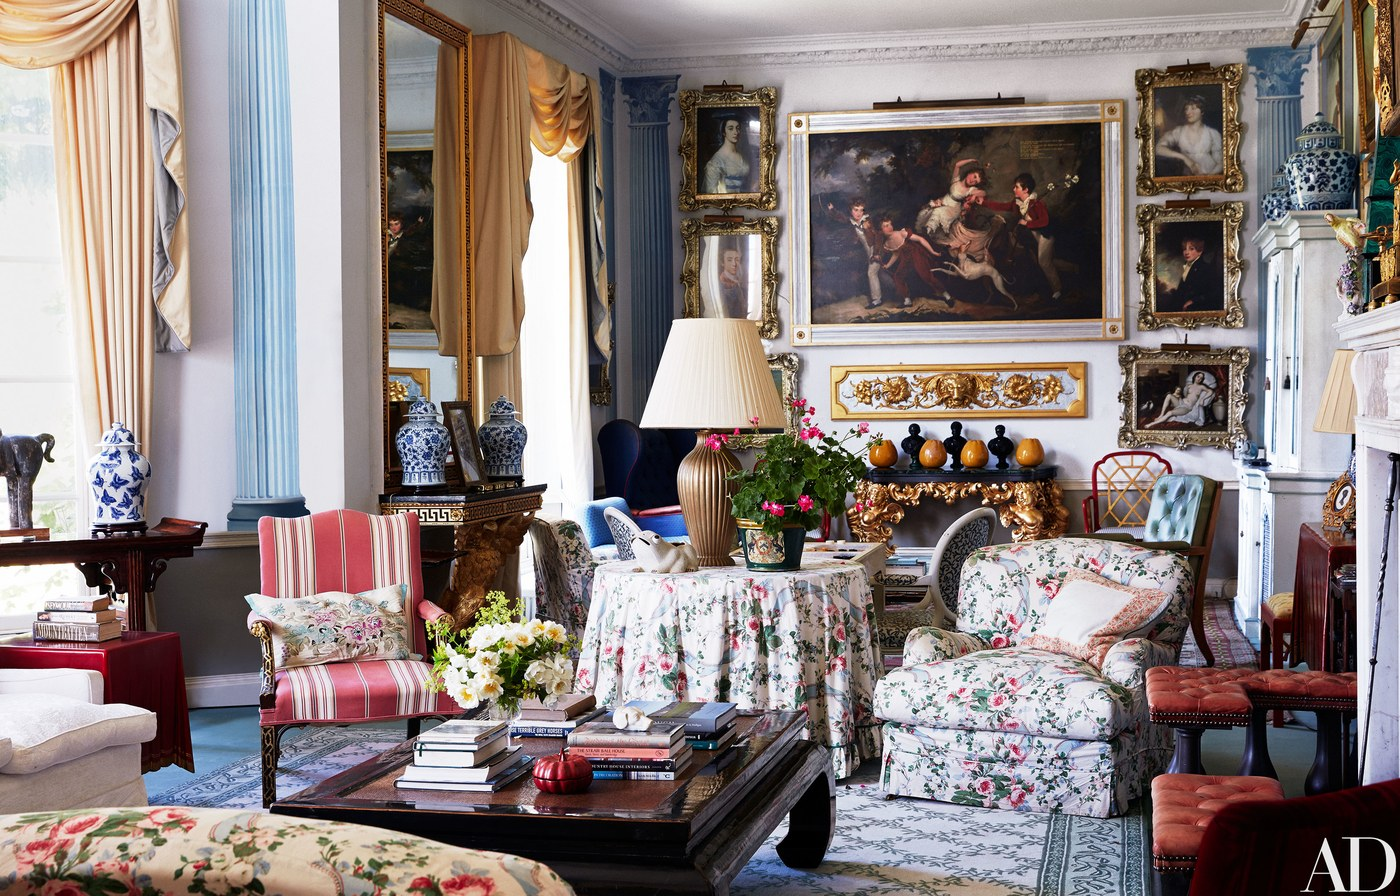 floral chintz is on display, but this time a sophisticated blue and white trellis rug is used